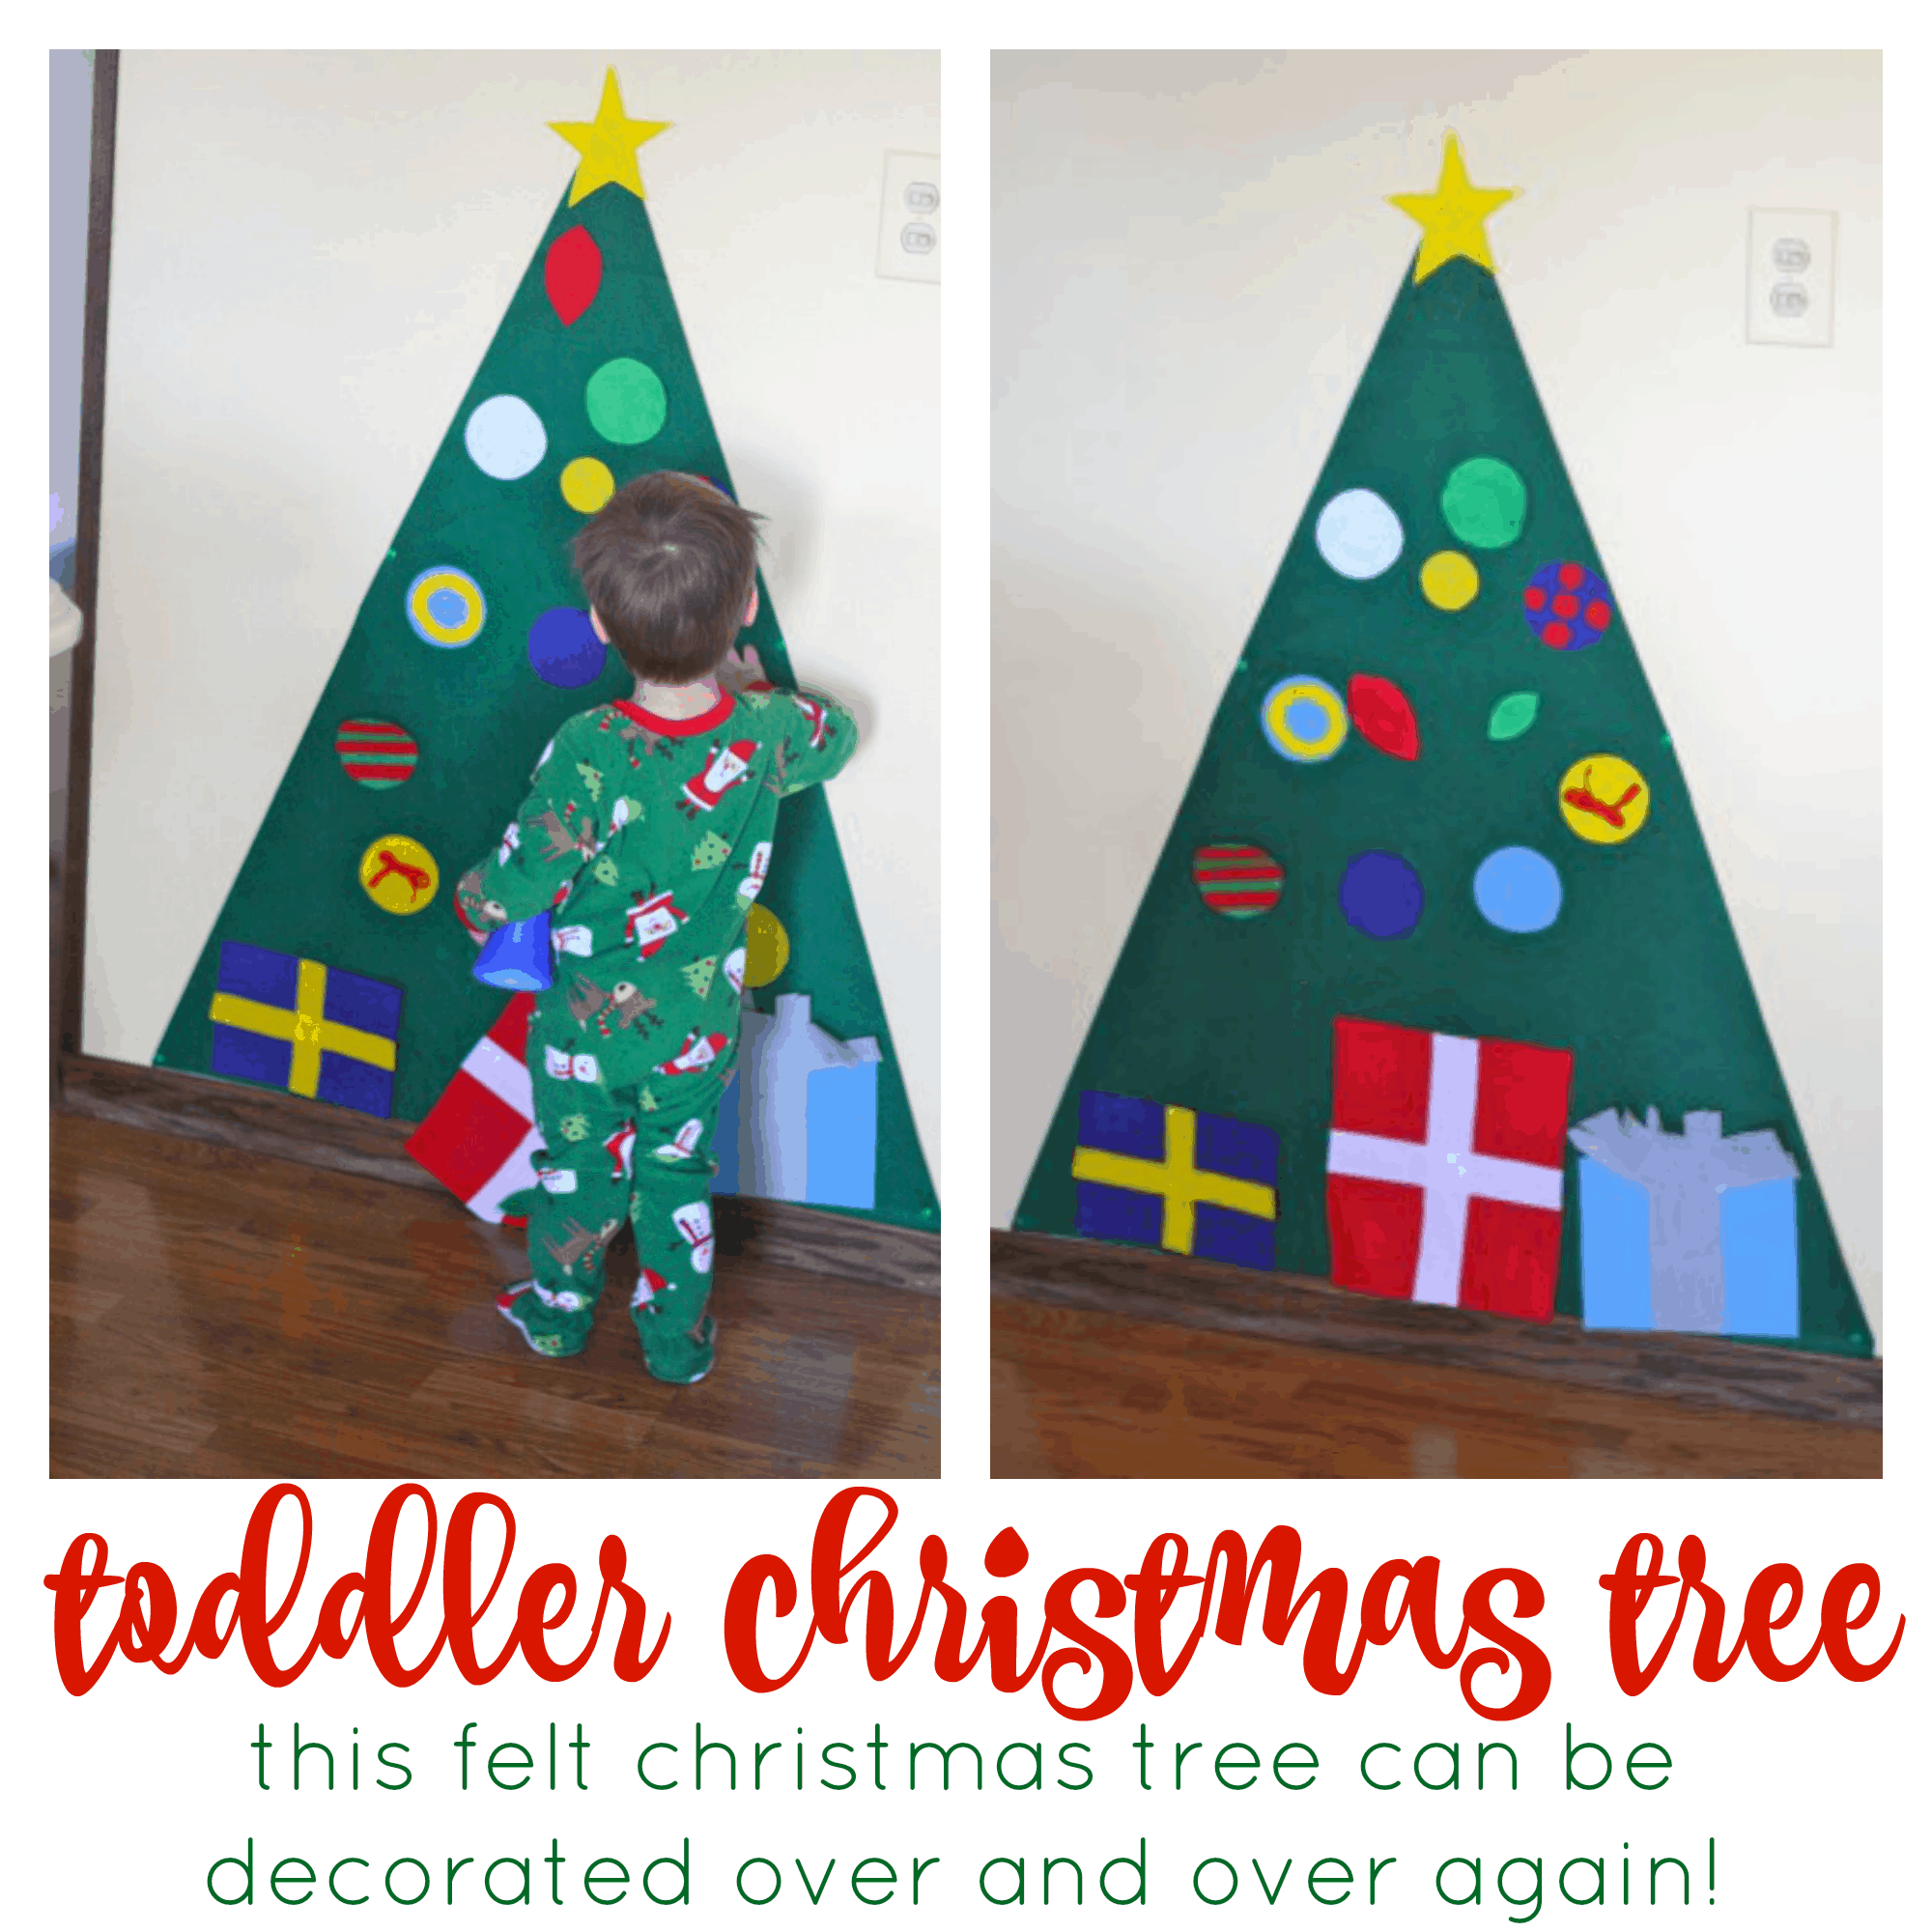 Kid-Friendly Christmas Tree - I Can Teach My Child!